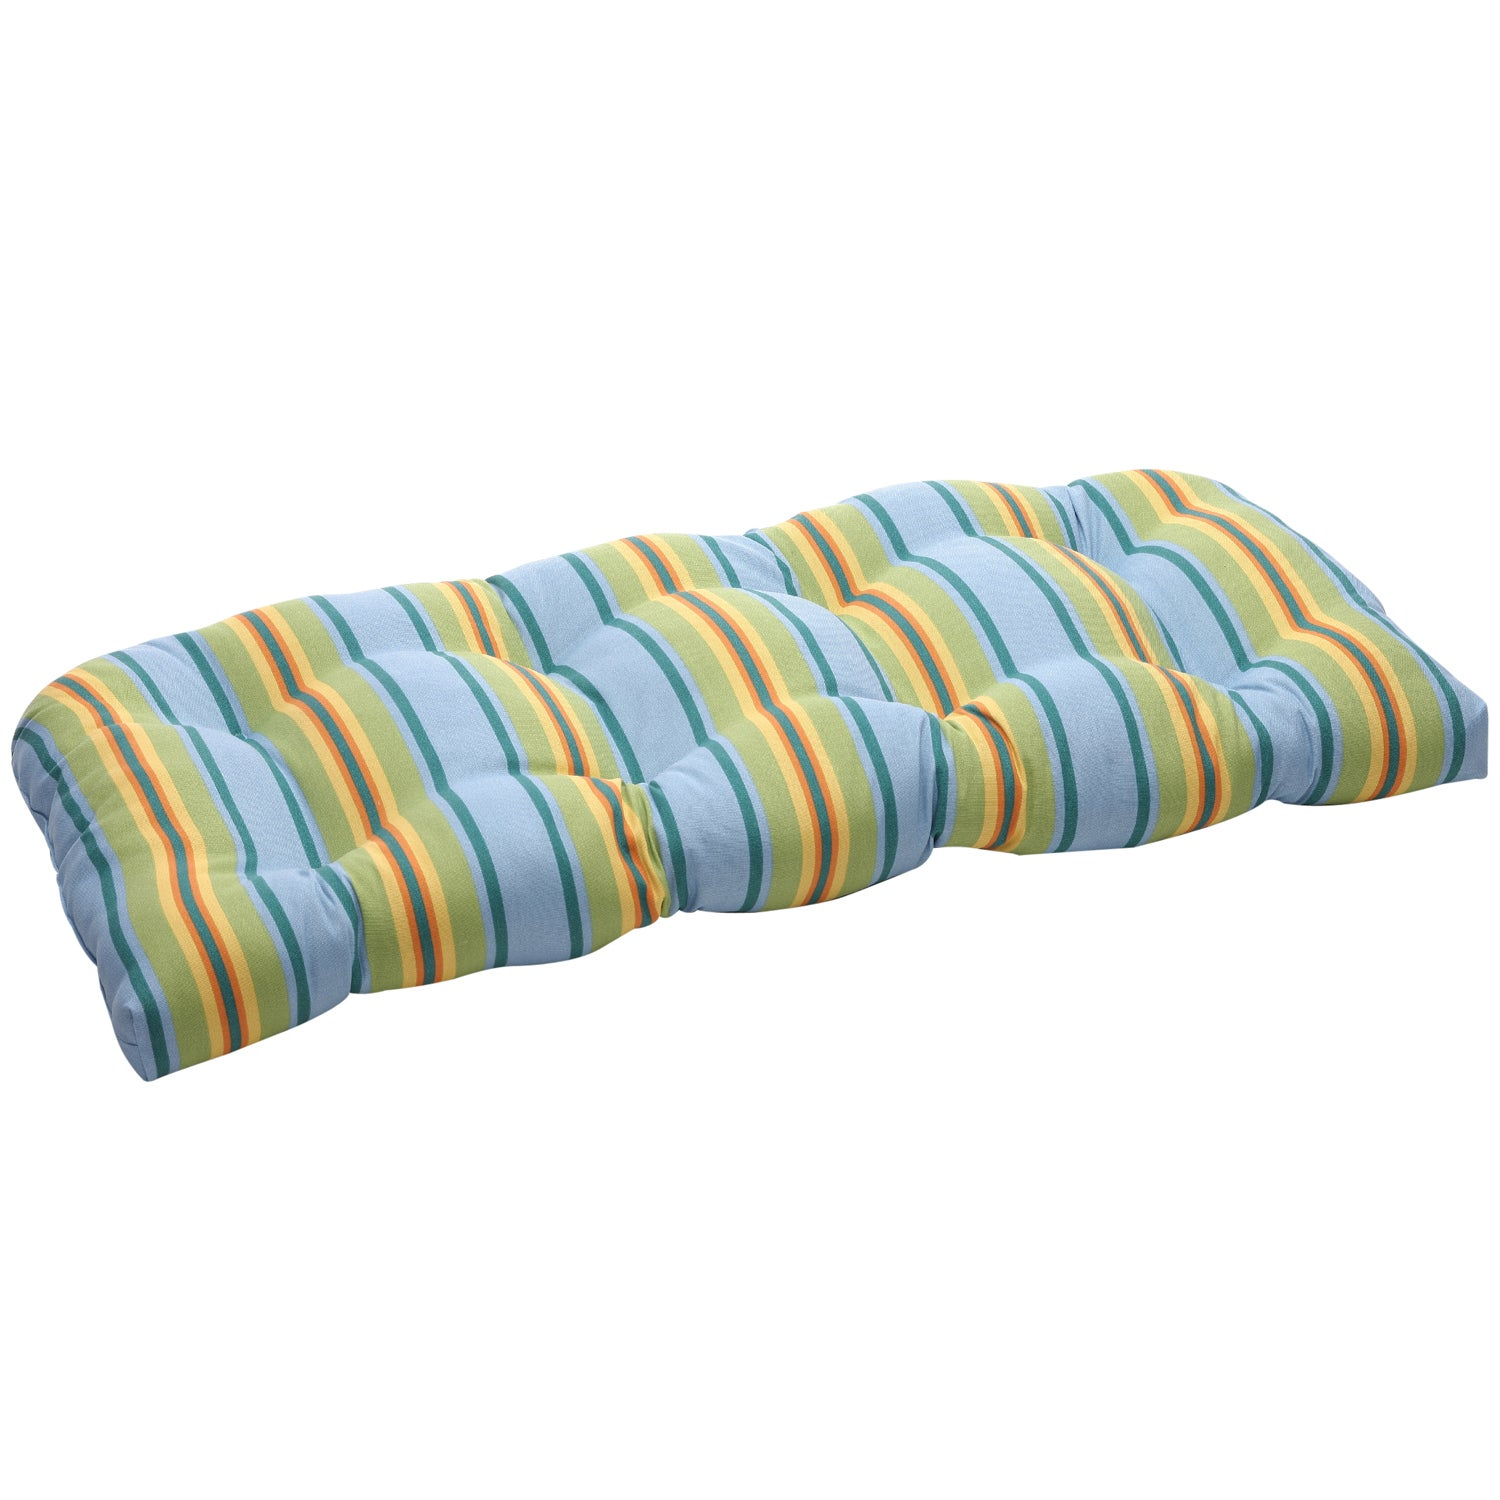 Blue/ Green Stripe Outdoor Wicker Loveseat Cushion